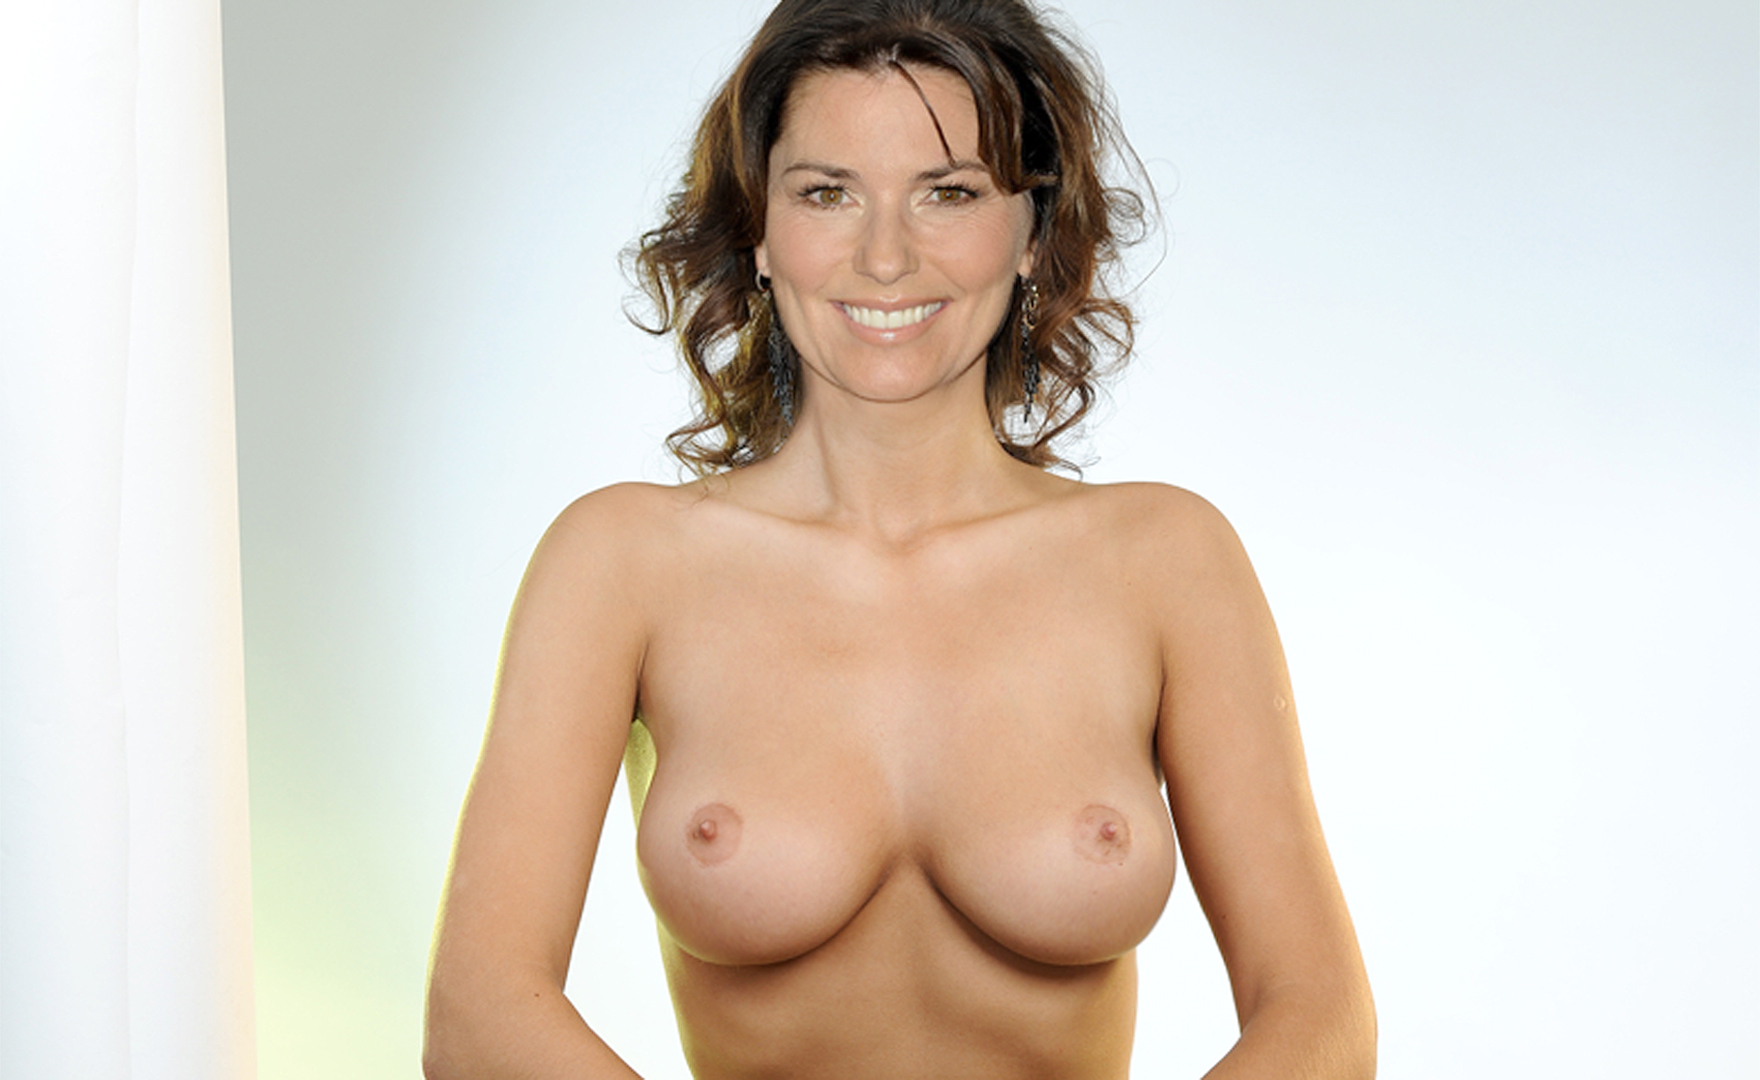 Shania twain shemale, flat chested girls sex movies